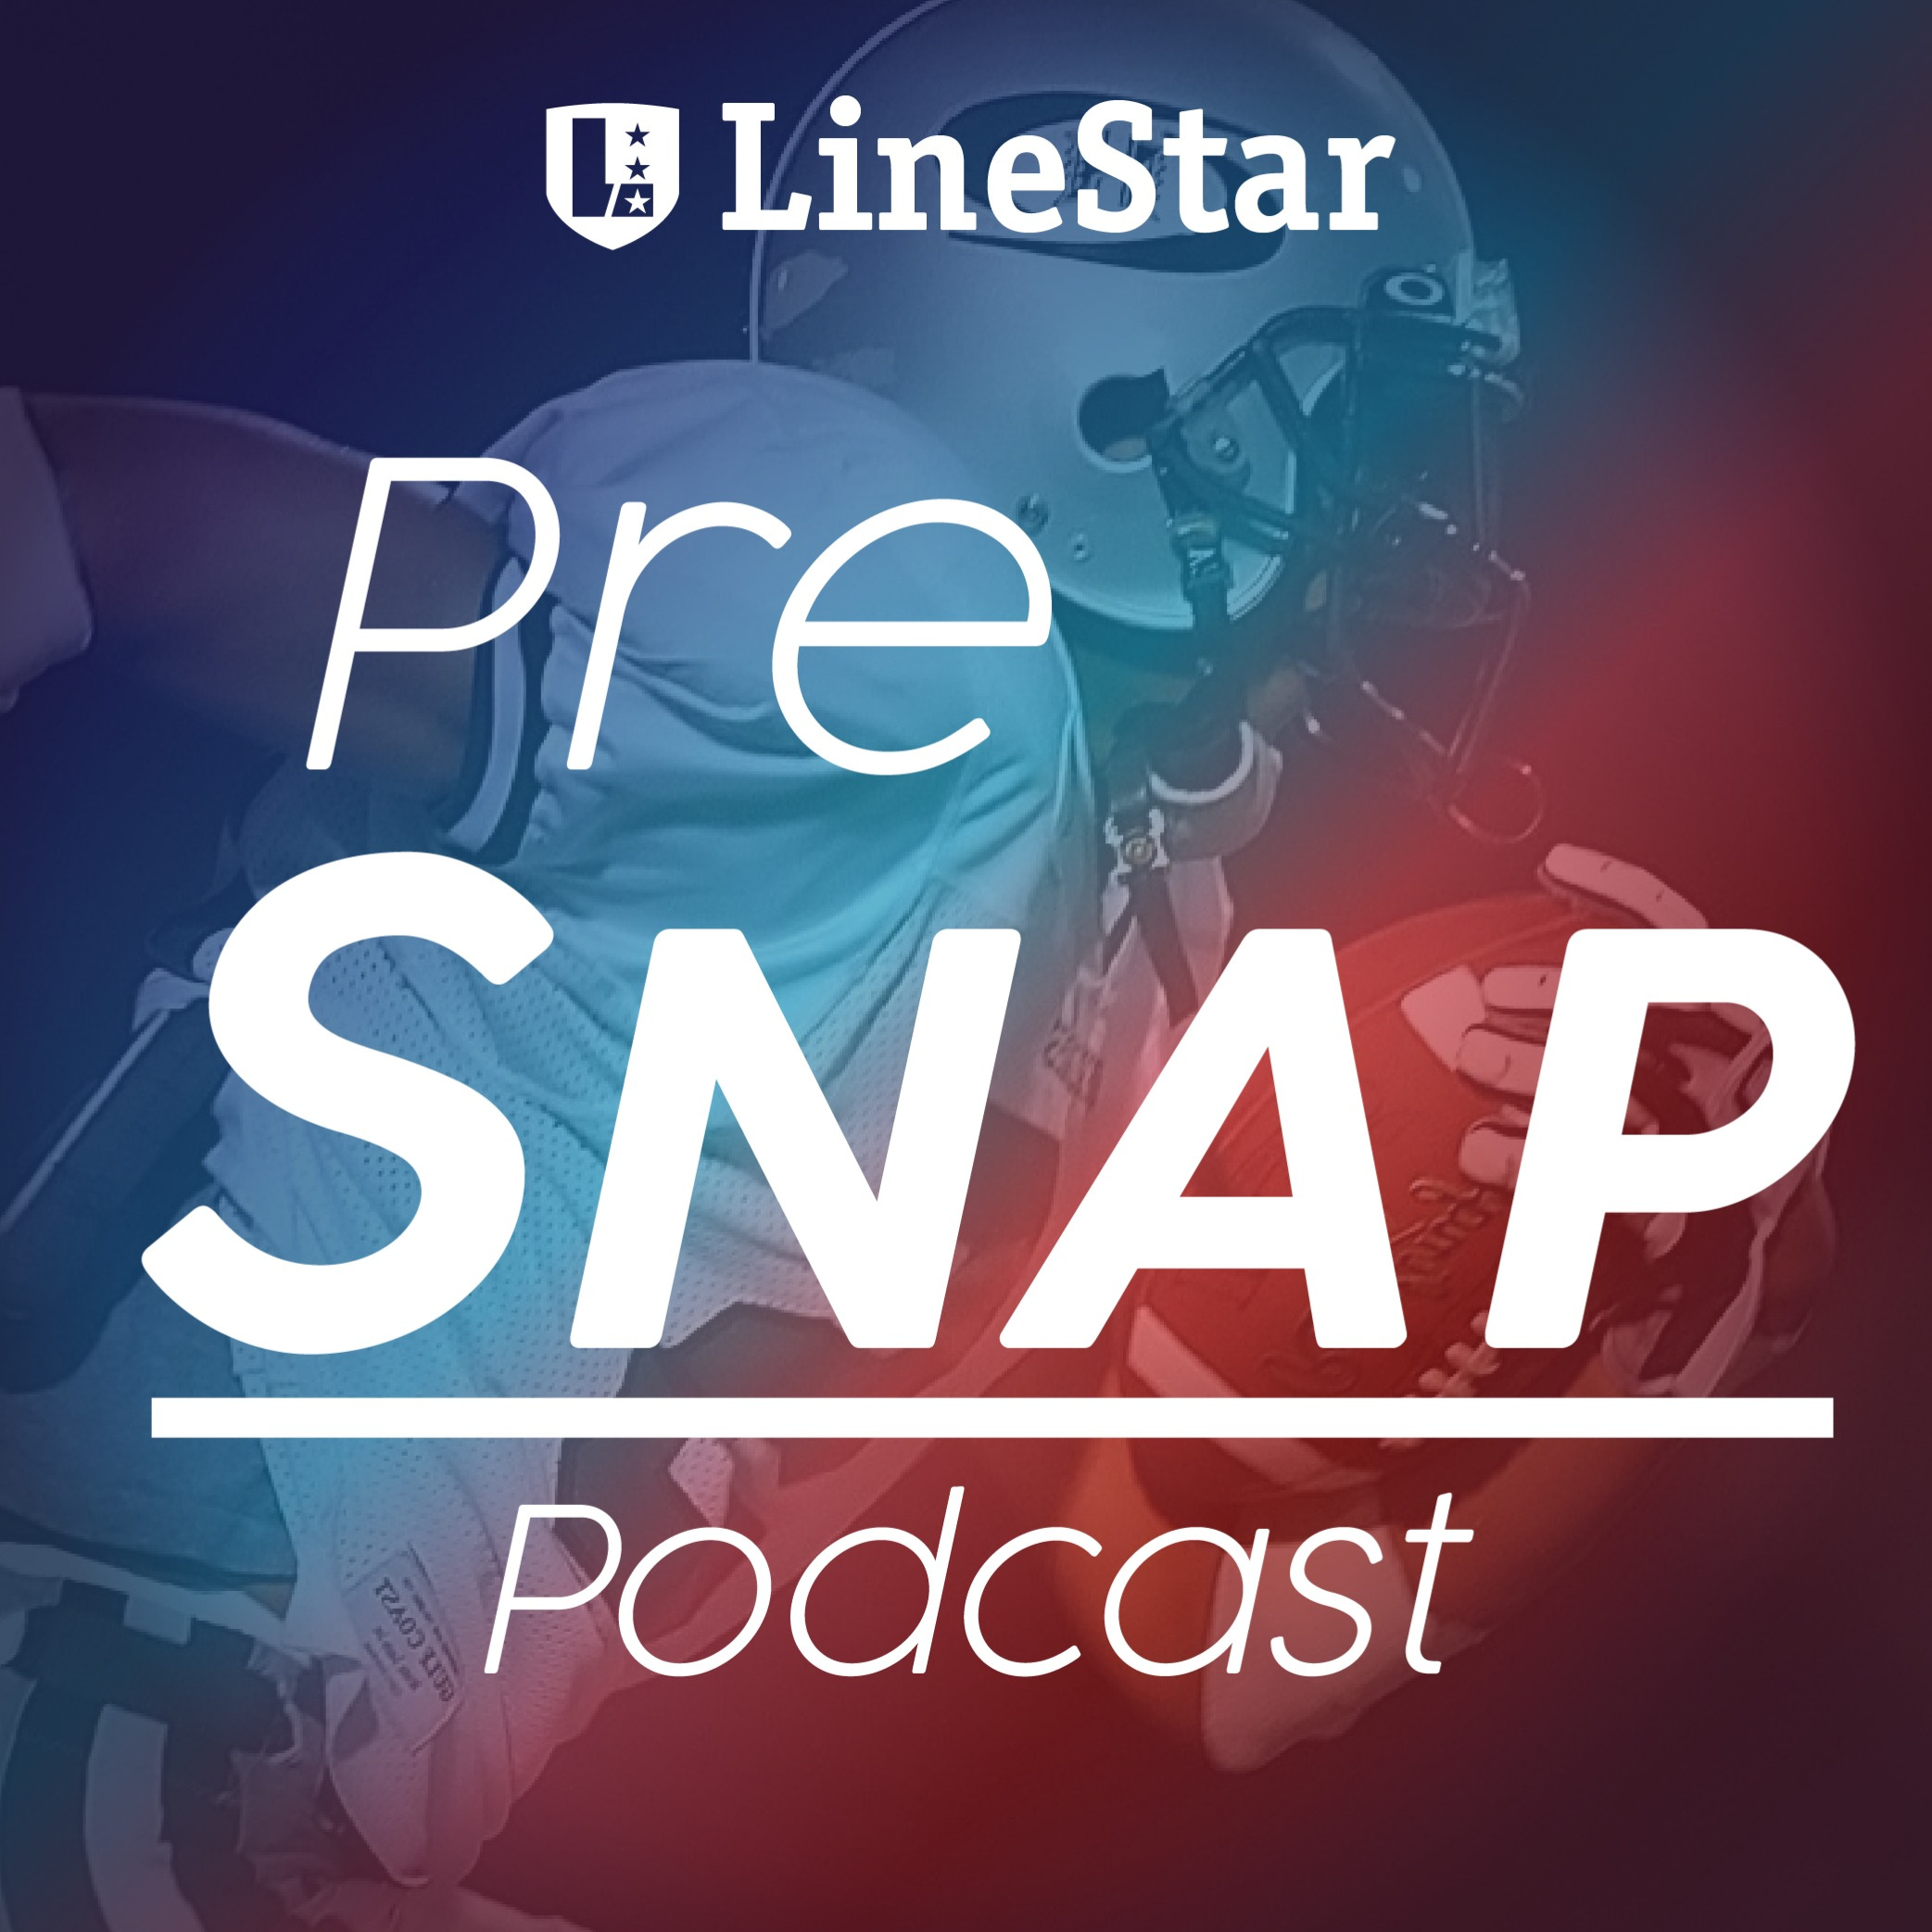 NFL DFS 12/19/19 - PreSnap Podcast by LineStar App - Week 16 Preview